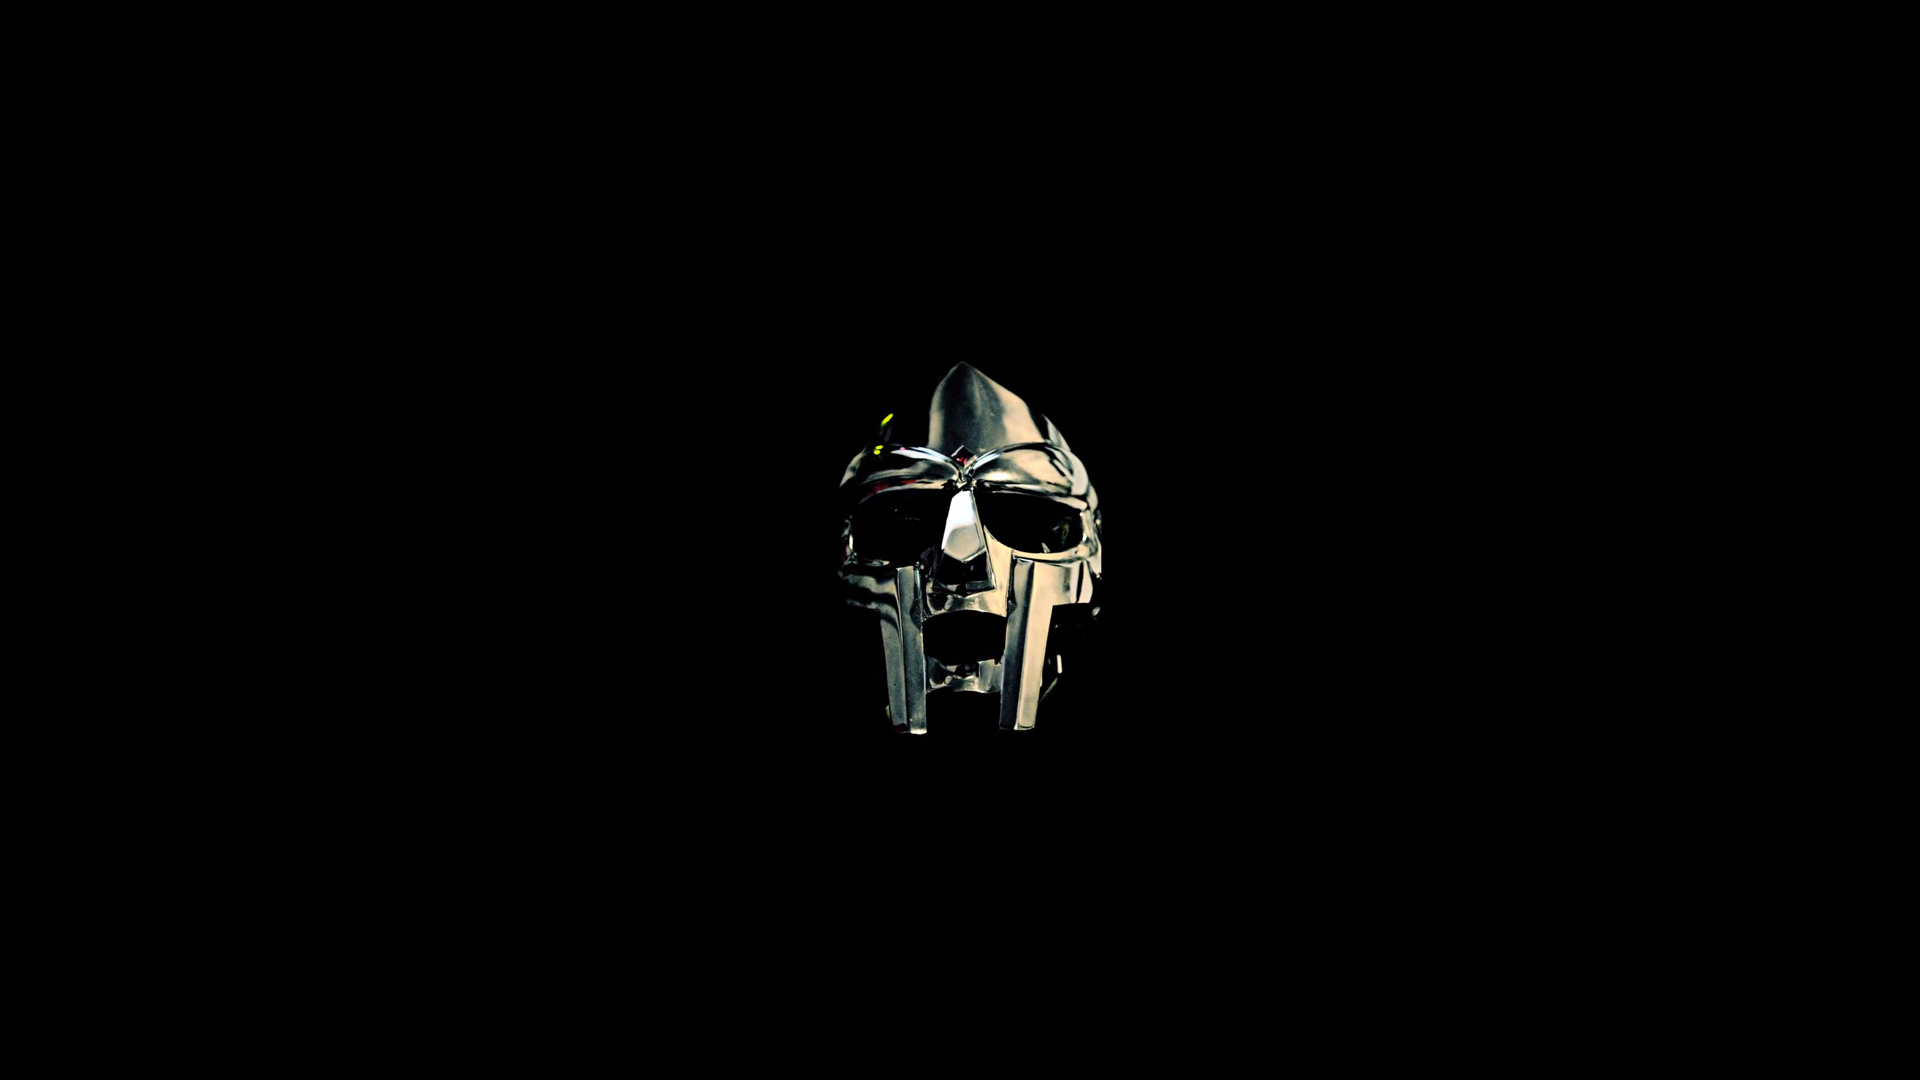 MF Doom Helmet Wallpaper Rap Wallpapers 1920x1080